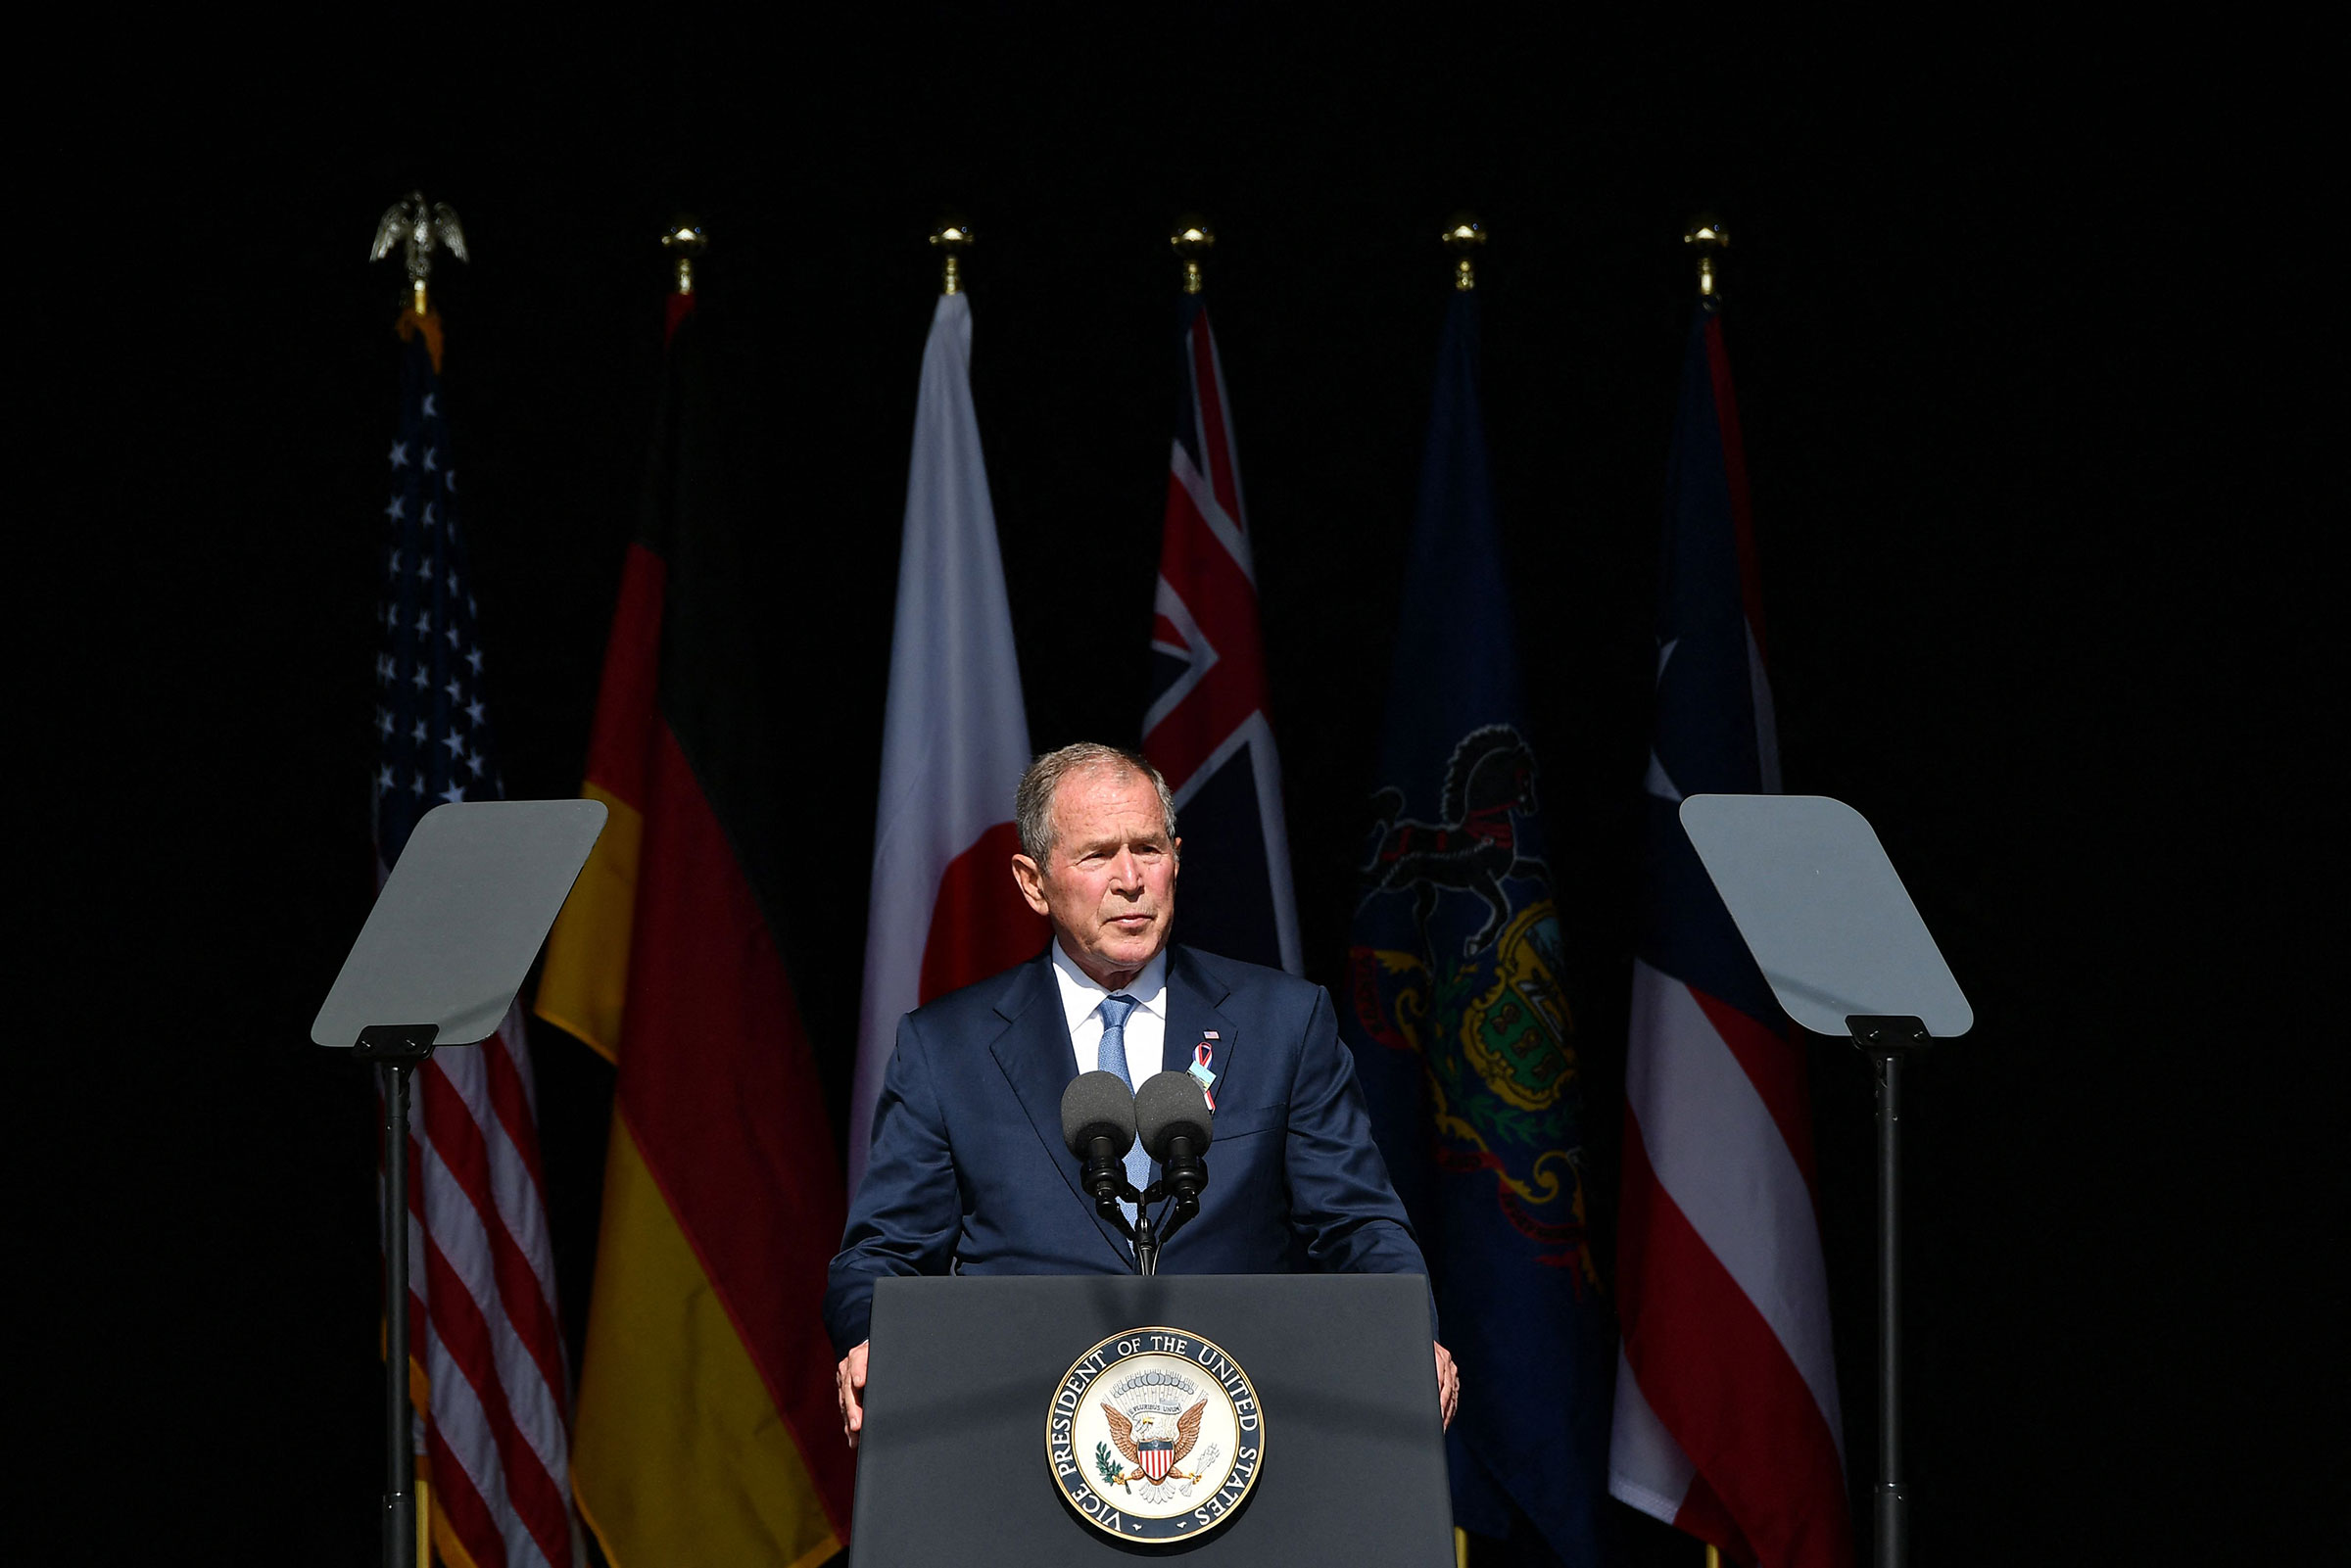 Former President George W. Bush speaks during a 9/11 commemoration at the Flight 93 National Memorial in Shanksville, Pa. on Sept. 11, 2021.